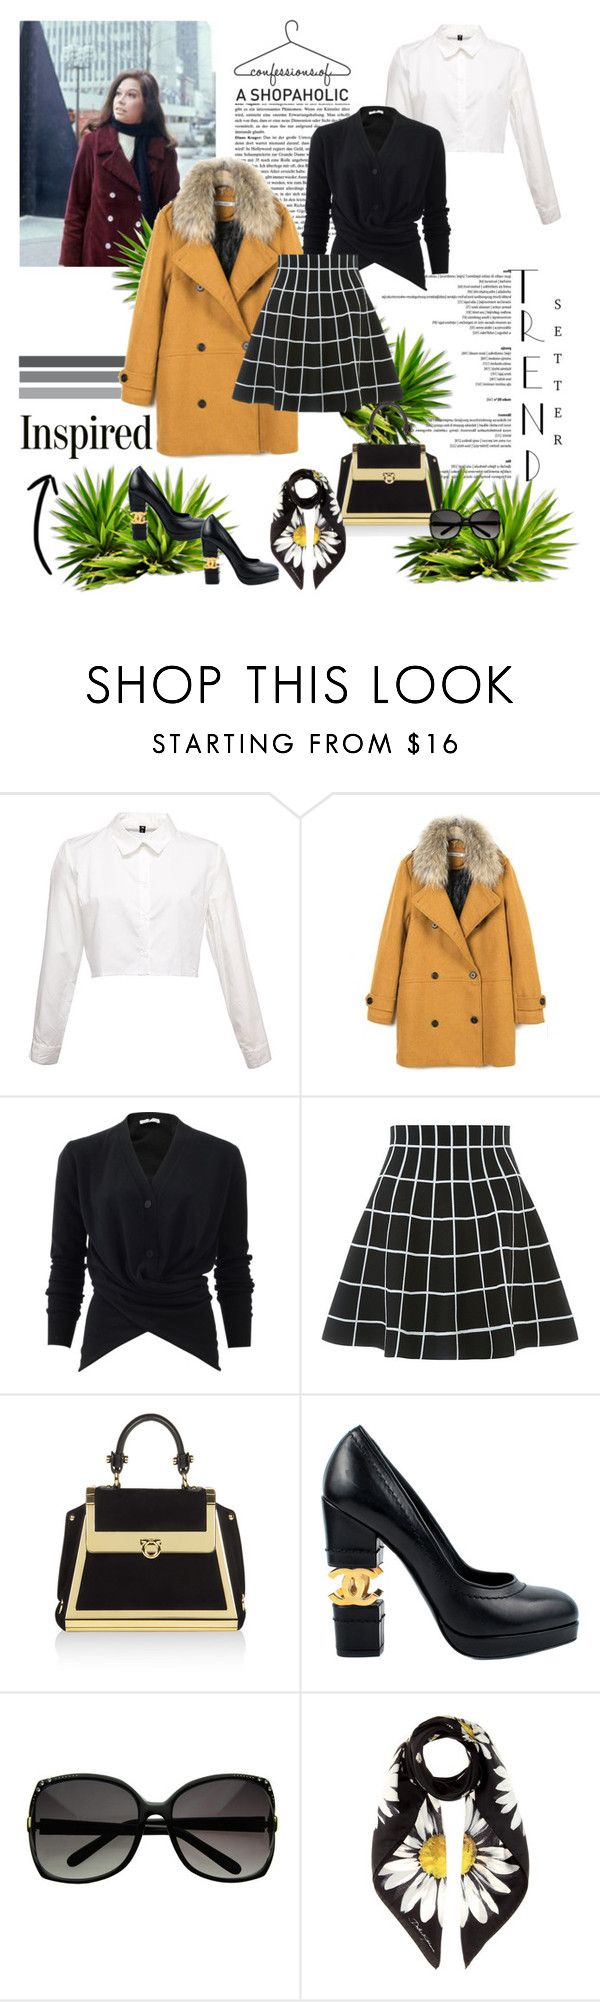 """INSPIRED: MARY TYLER MOORE SHOW-THE CLASSIC LADY, ON HER OWN AND LOVE'IN IT!"" by g-vah-styles ❤ liked on Polyvore featuring Tomas Maier, Salvatore Ferragamo, Chanel and Dolce&Gabbana"